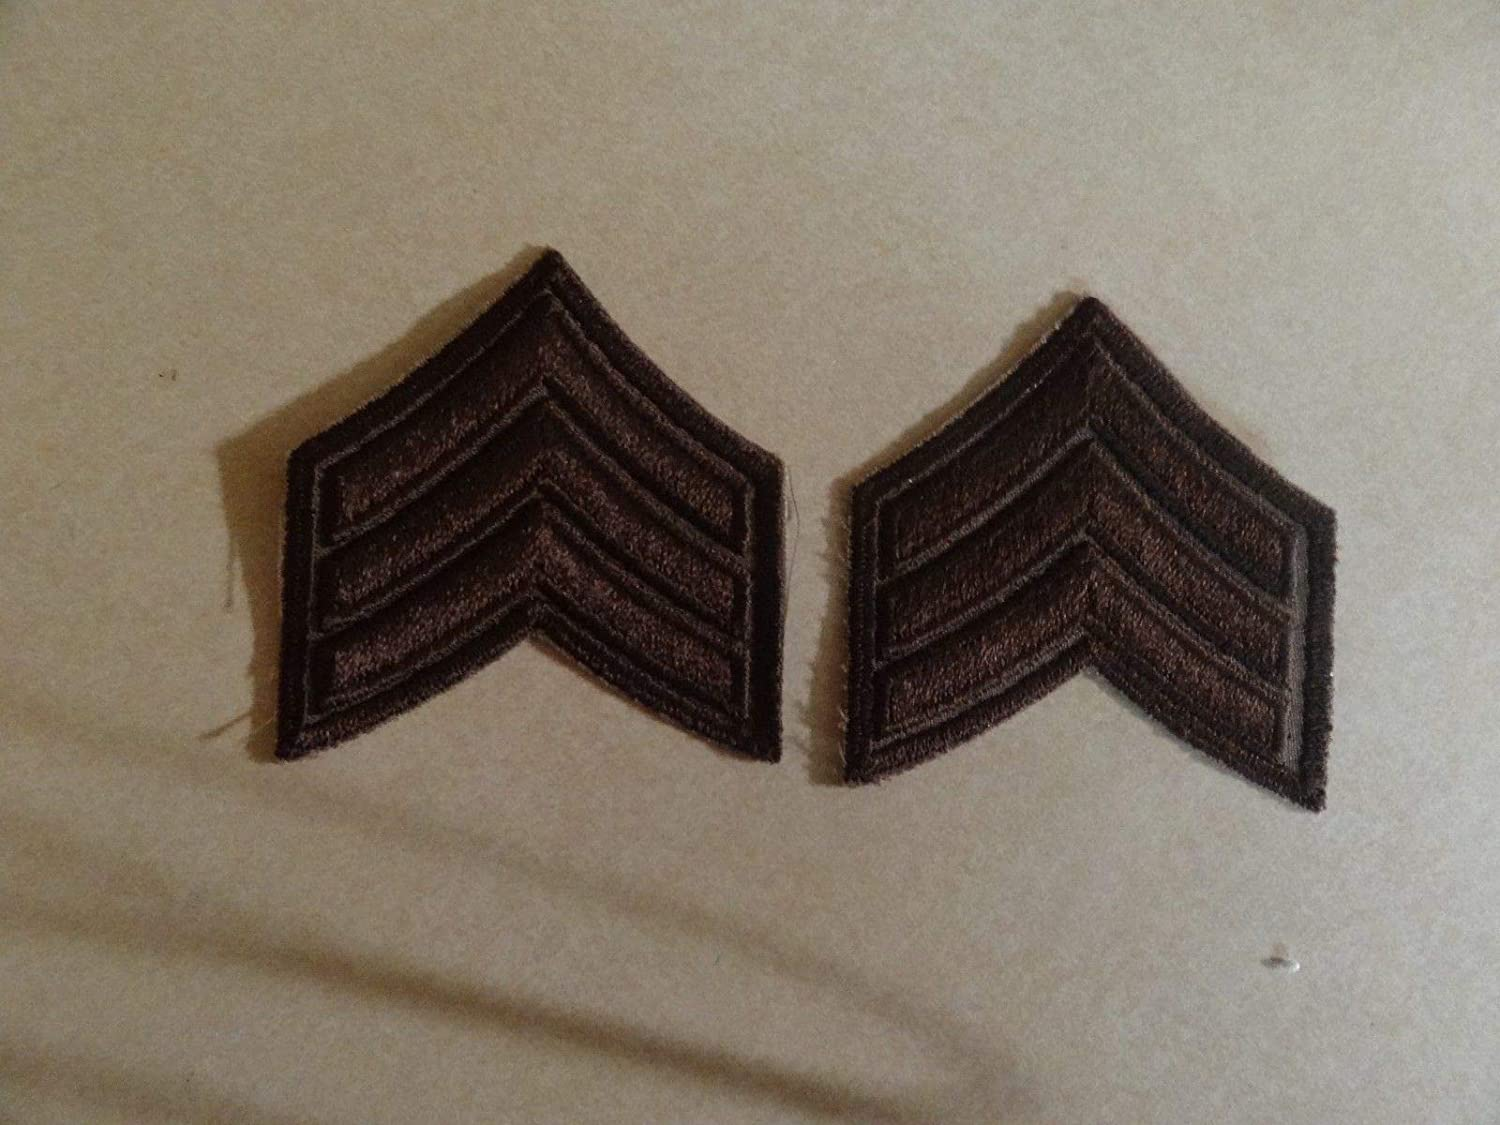 MILITARY PATCH US ARMY CLOTH RANK SET OF 2 SERGEANT E-5 BROWN POLICE SHERIFF